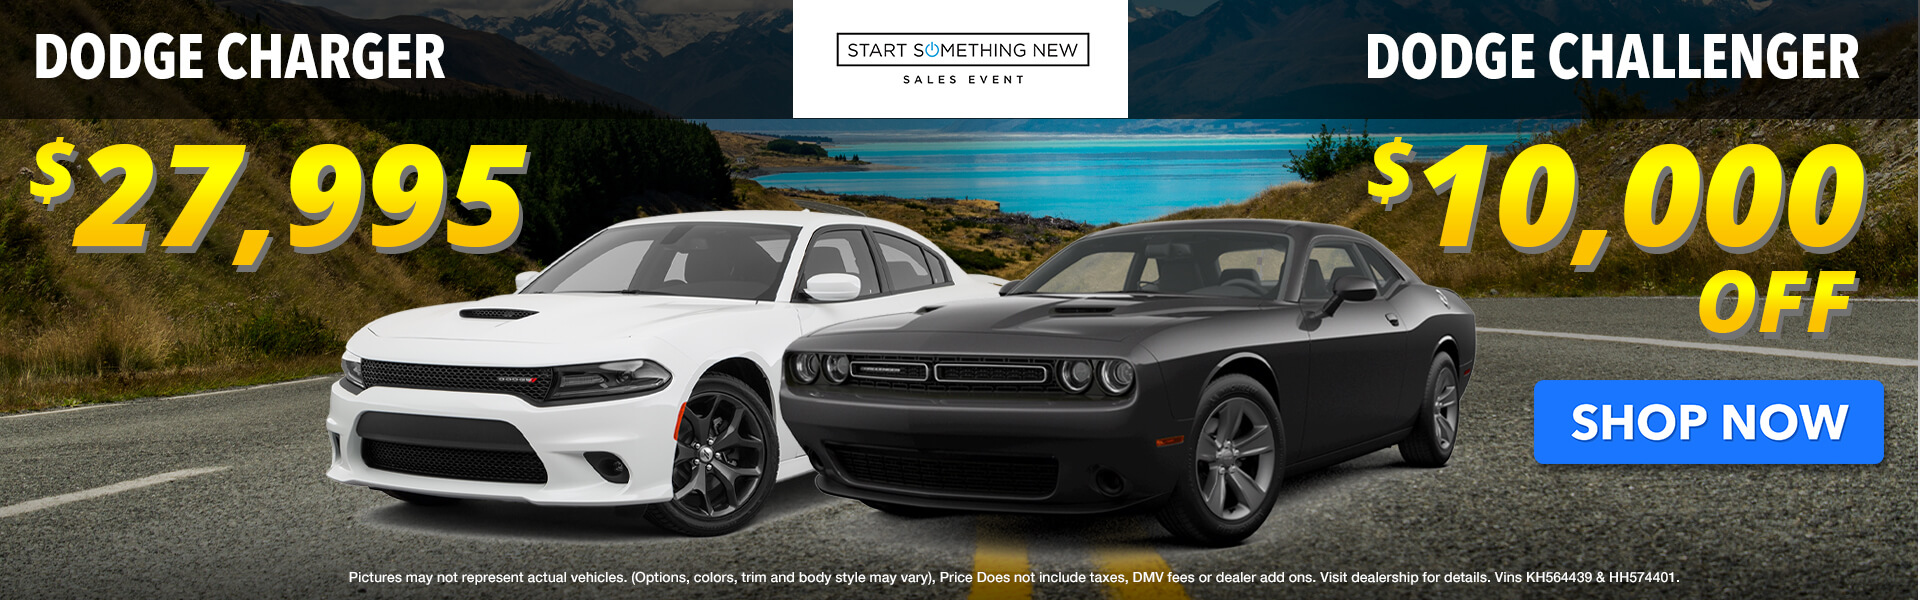 Challenger and Charger